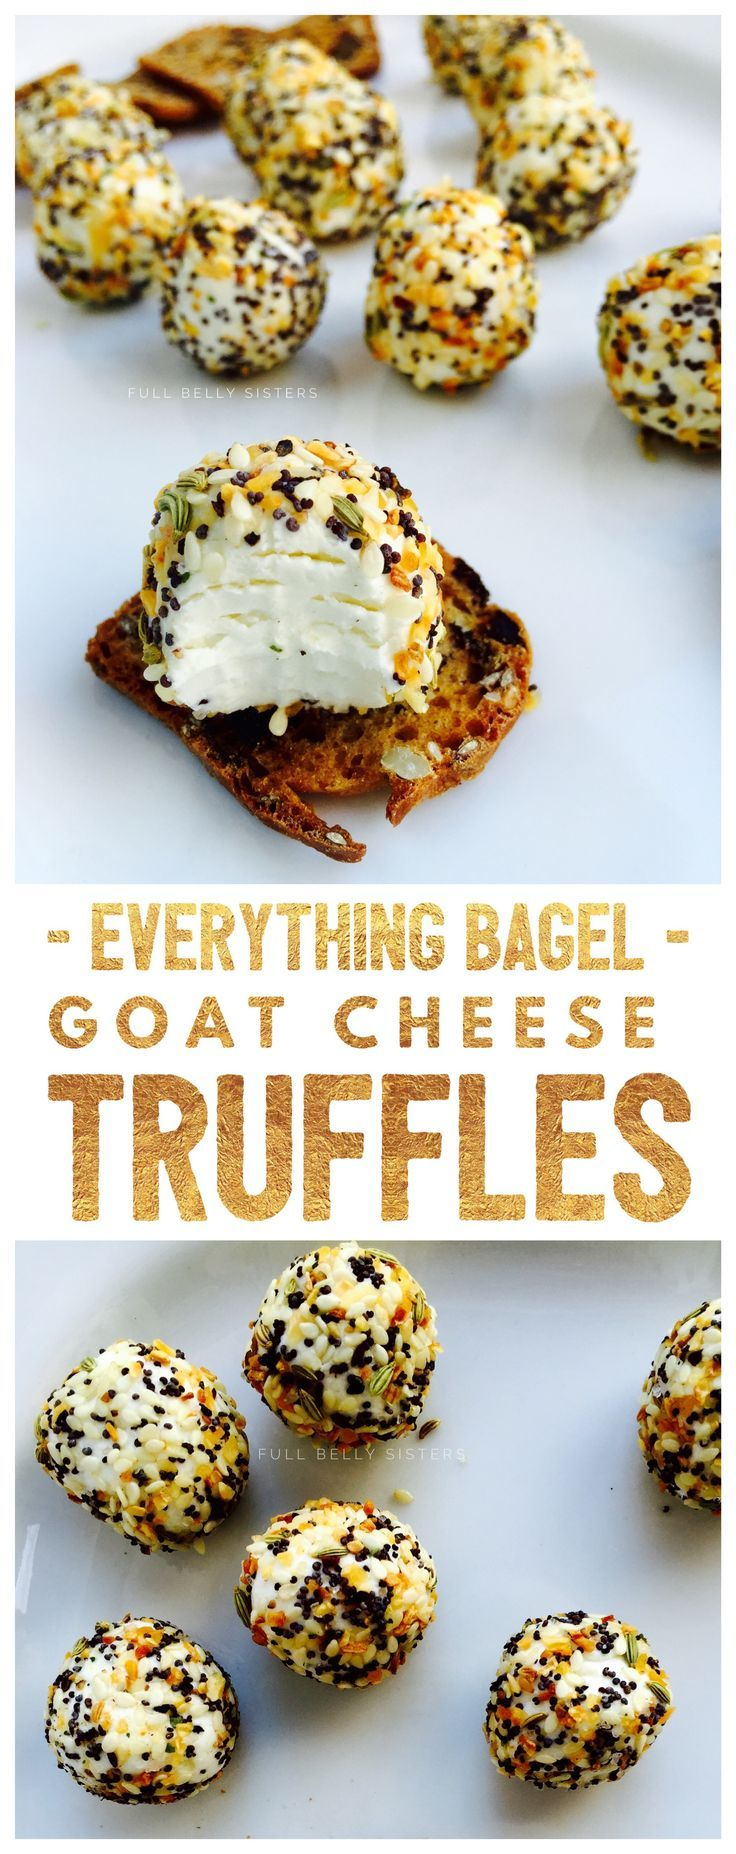 Everything Bagel Goat Cheese Truffles are a unique, easy, and beautiful addition to any cheese platter this holiday season. Each one is like a delicious bite of your favorite bagel!